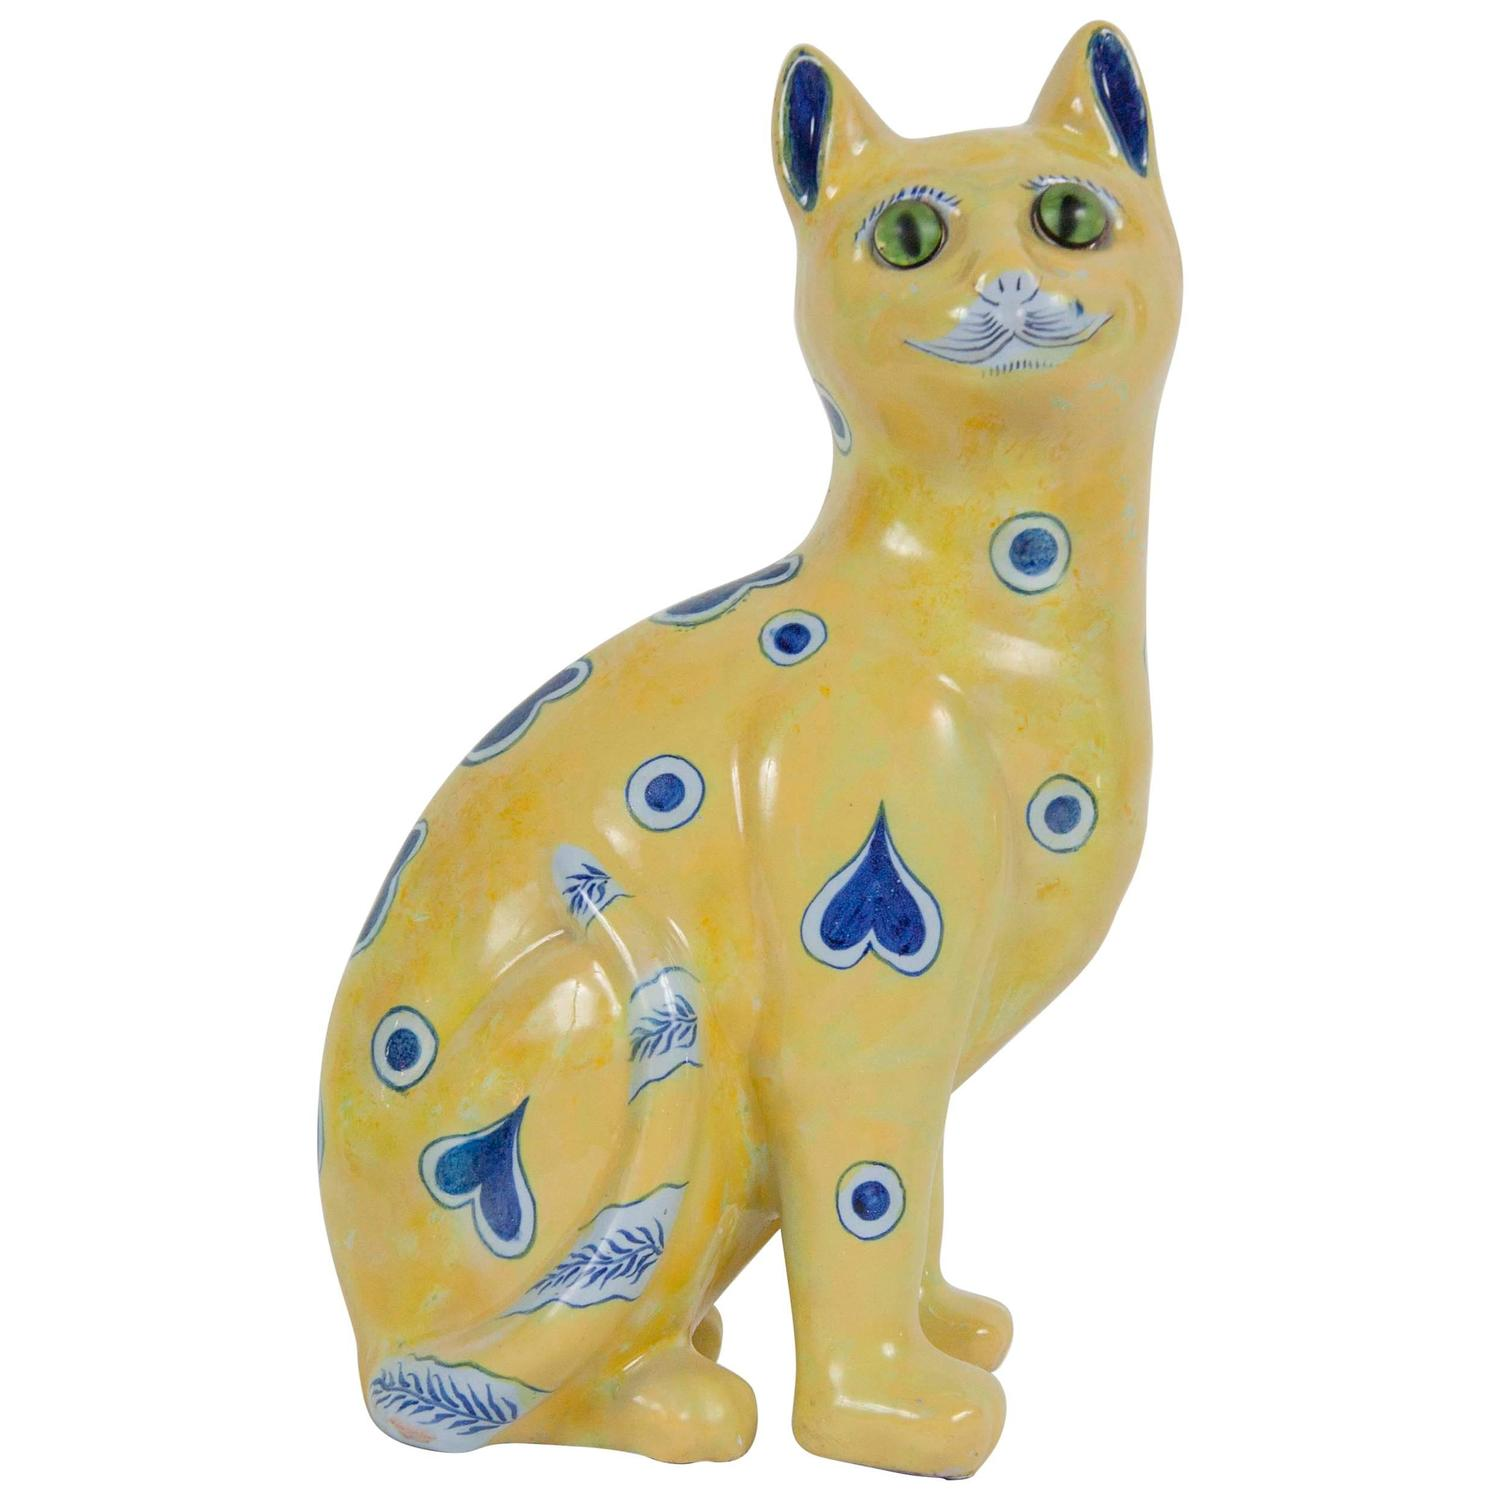 Ceramic Cats - 59 For Sale on 1stdibs